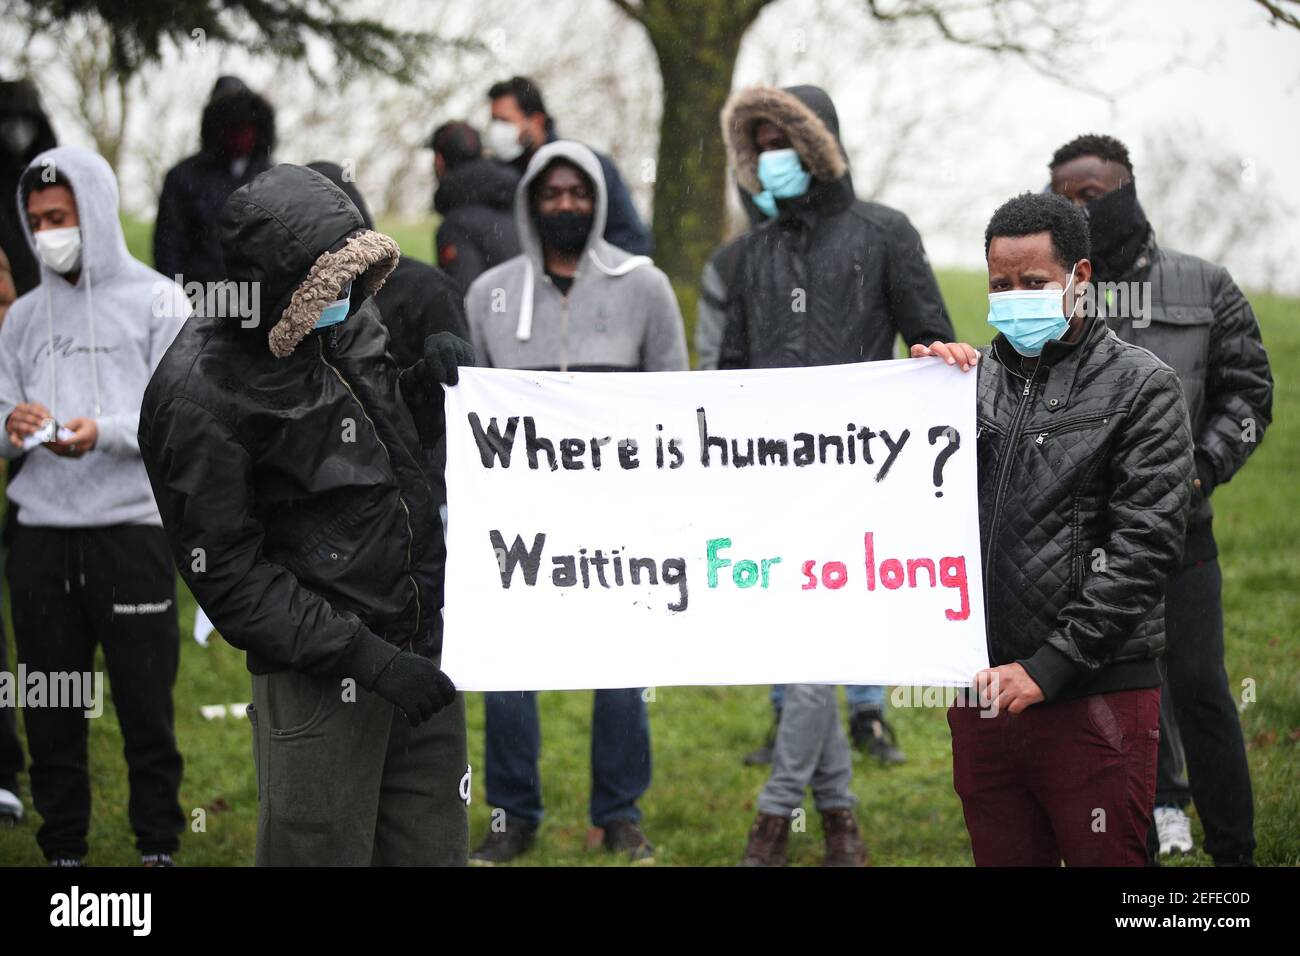 Protesters outside the Crowne Plaza London Heathrow hotel in West Drayton, London, which is being used as accommodation for asylum seekers. Picture date: Wednesday February 17, 2021. Stock Photo